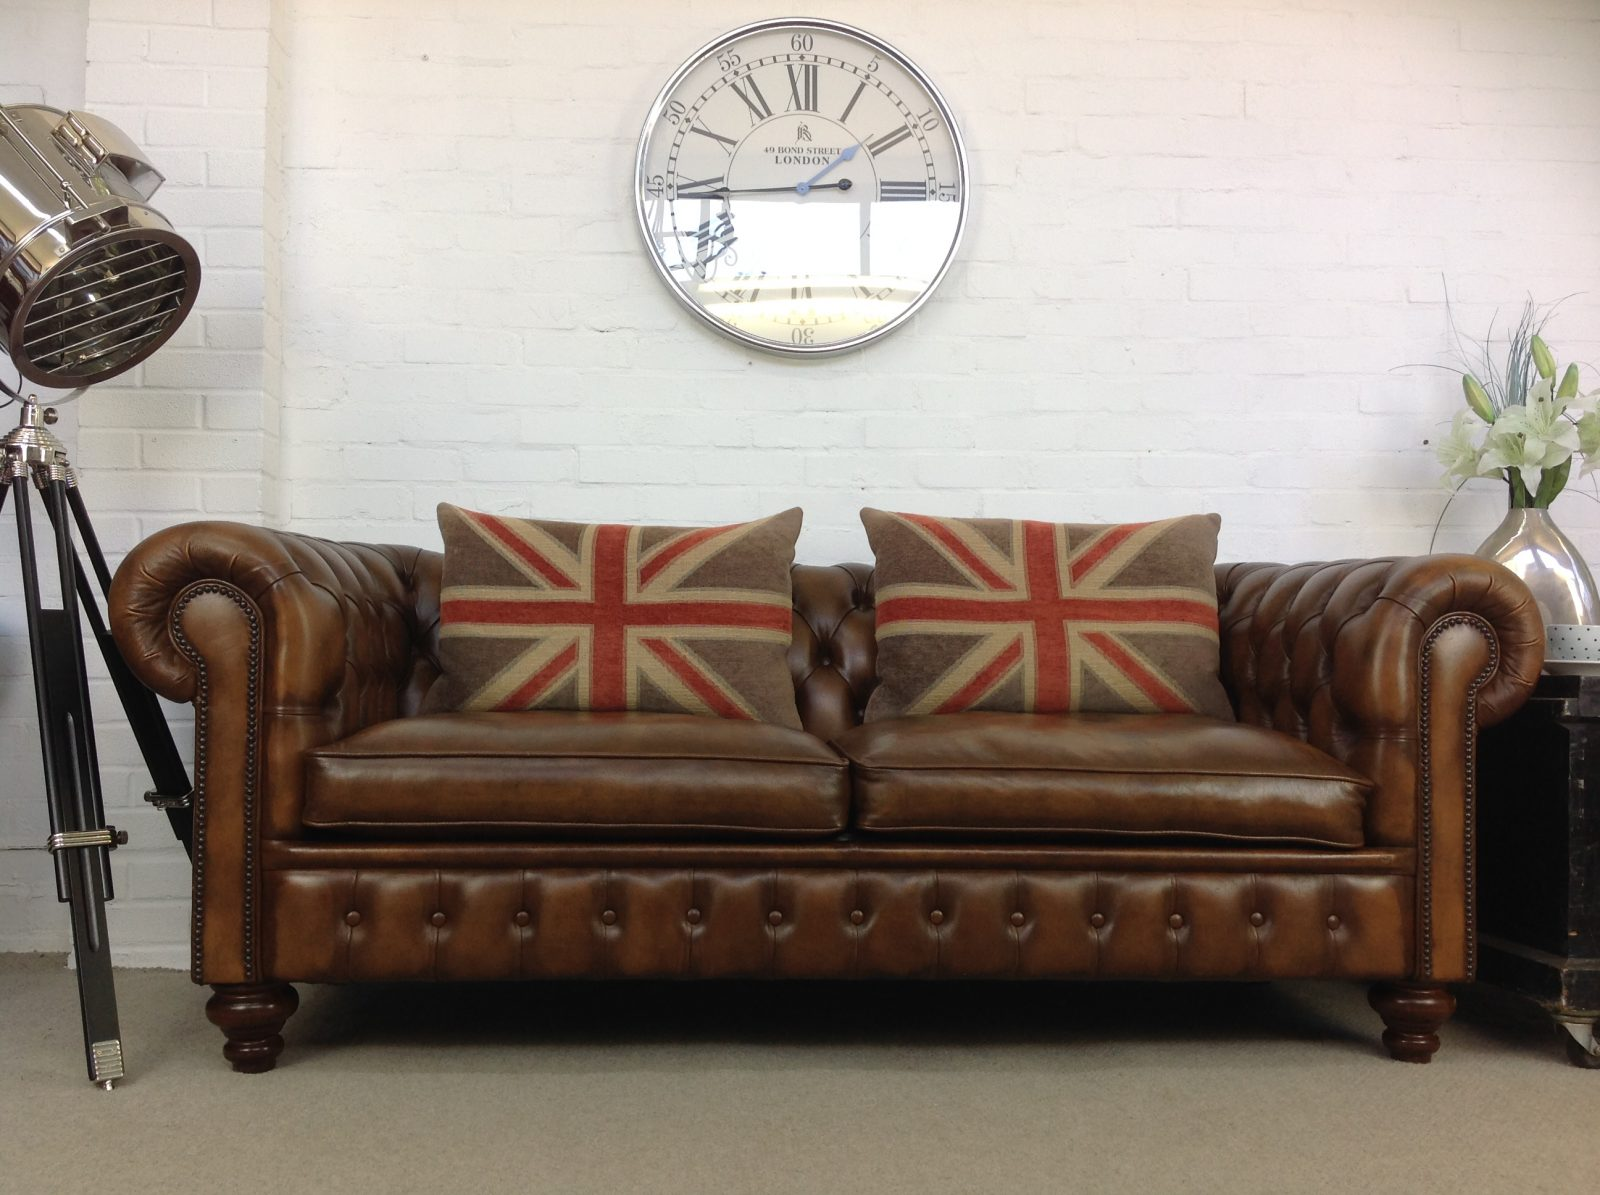 Antique Tobacco Brown 3 Seater Chesterfield Sofa.